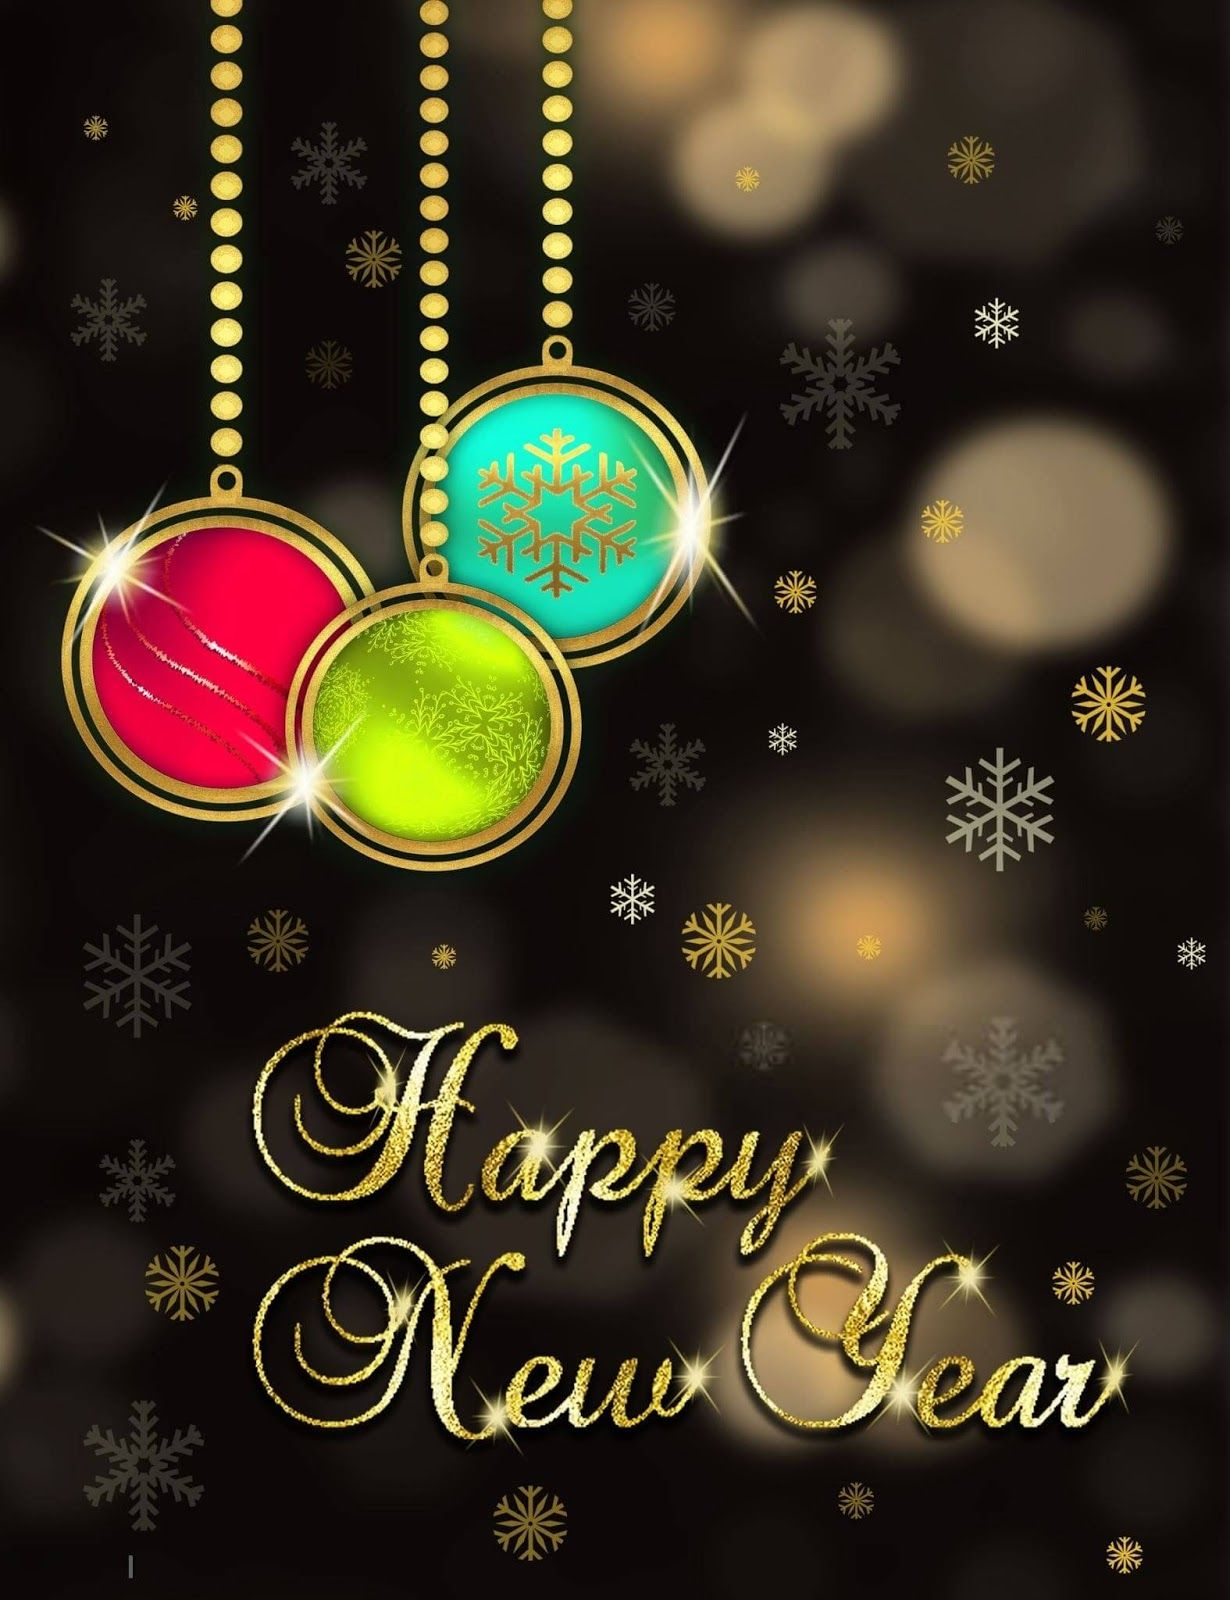 Happy New Year 2021 Hd Wallpaper Images Download Free Happy New Year Images Happy New Year Wallpaper New Year Images